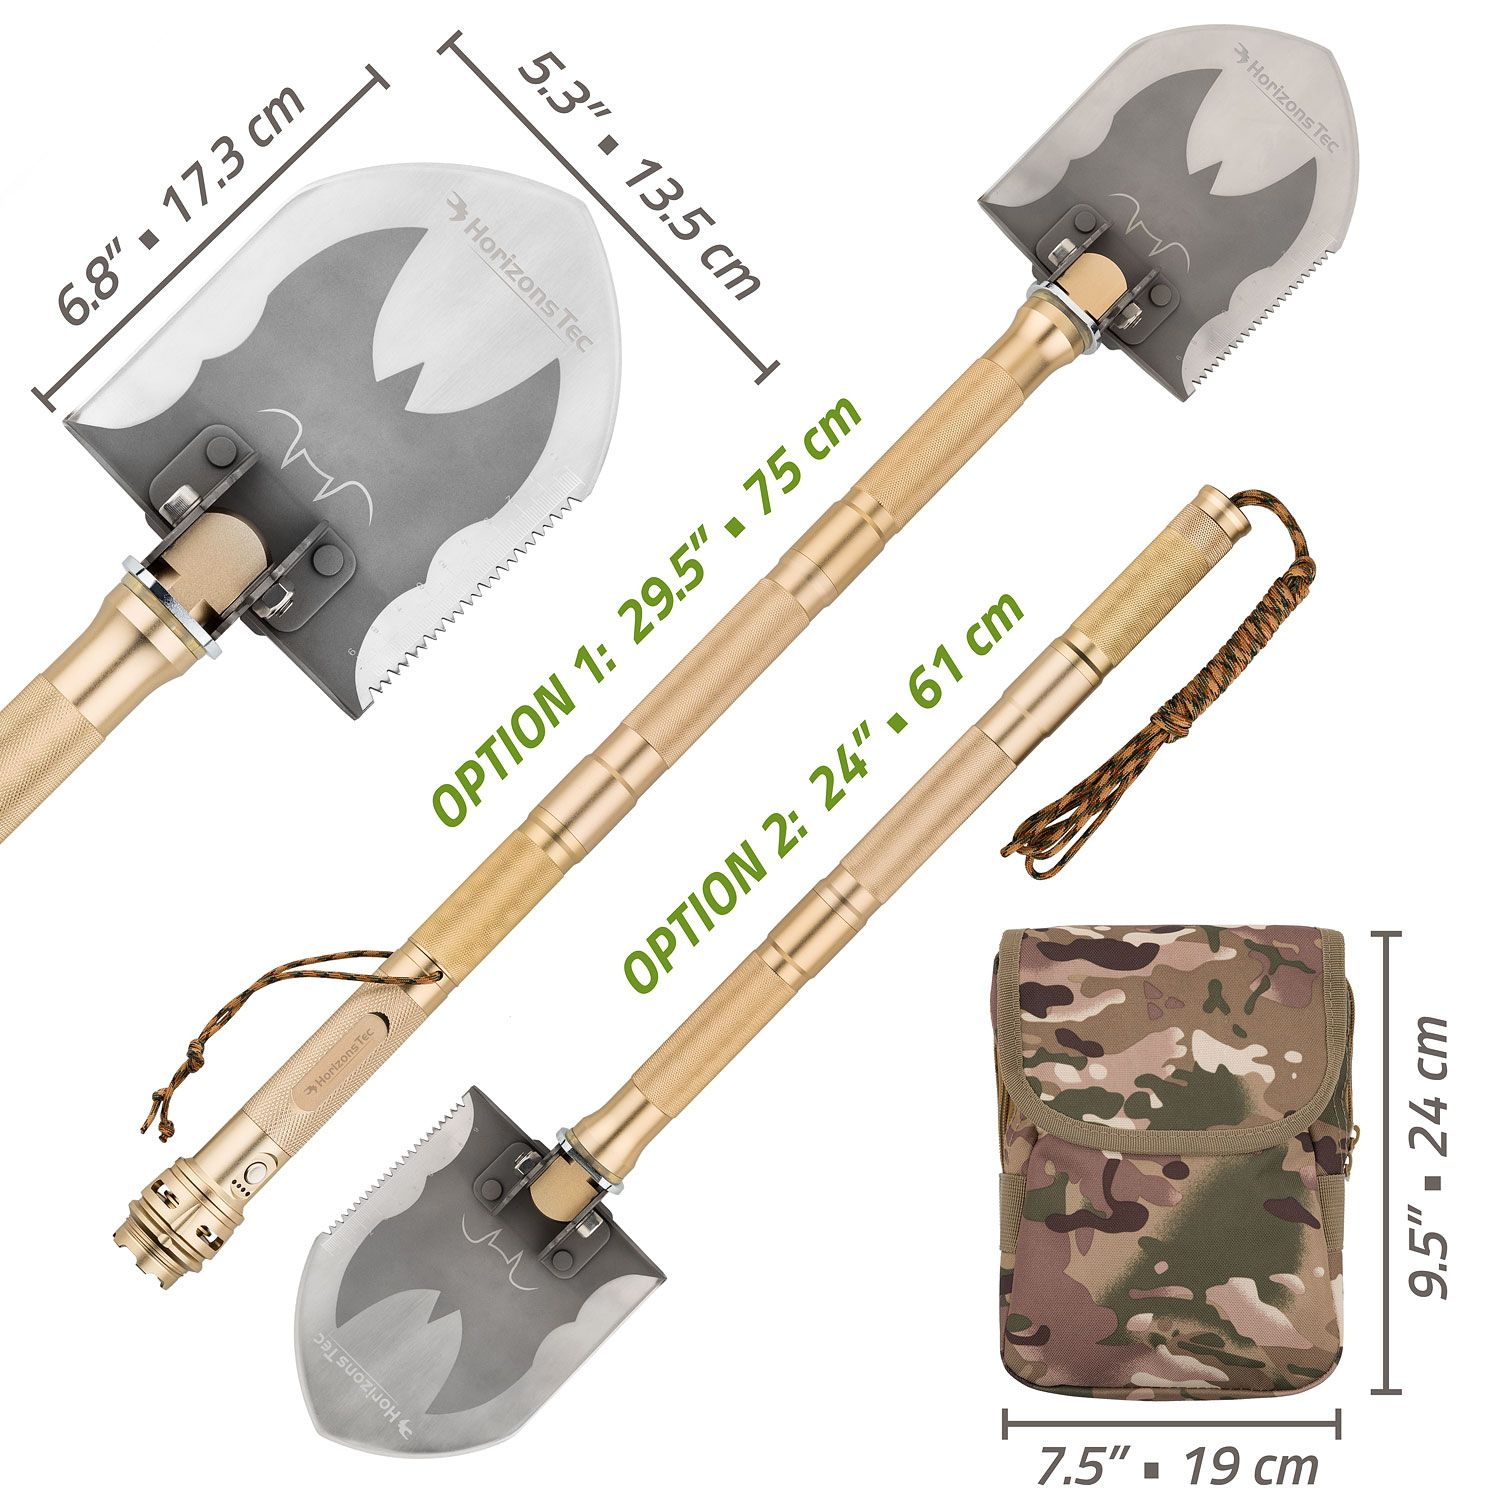 Pin On Camping Gear Gadgets Awsom Products Ideas